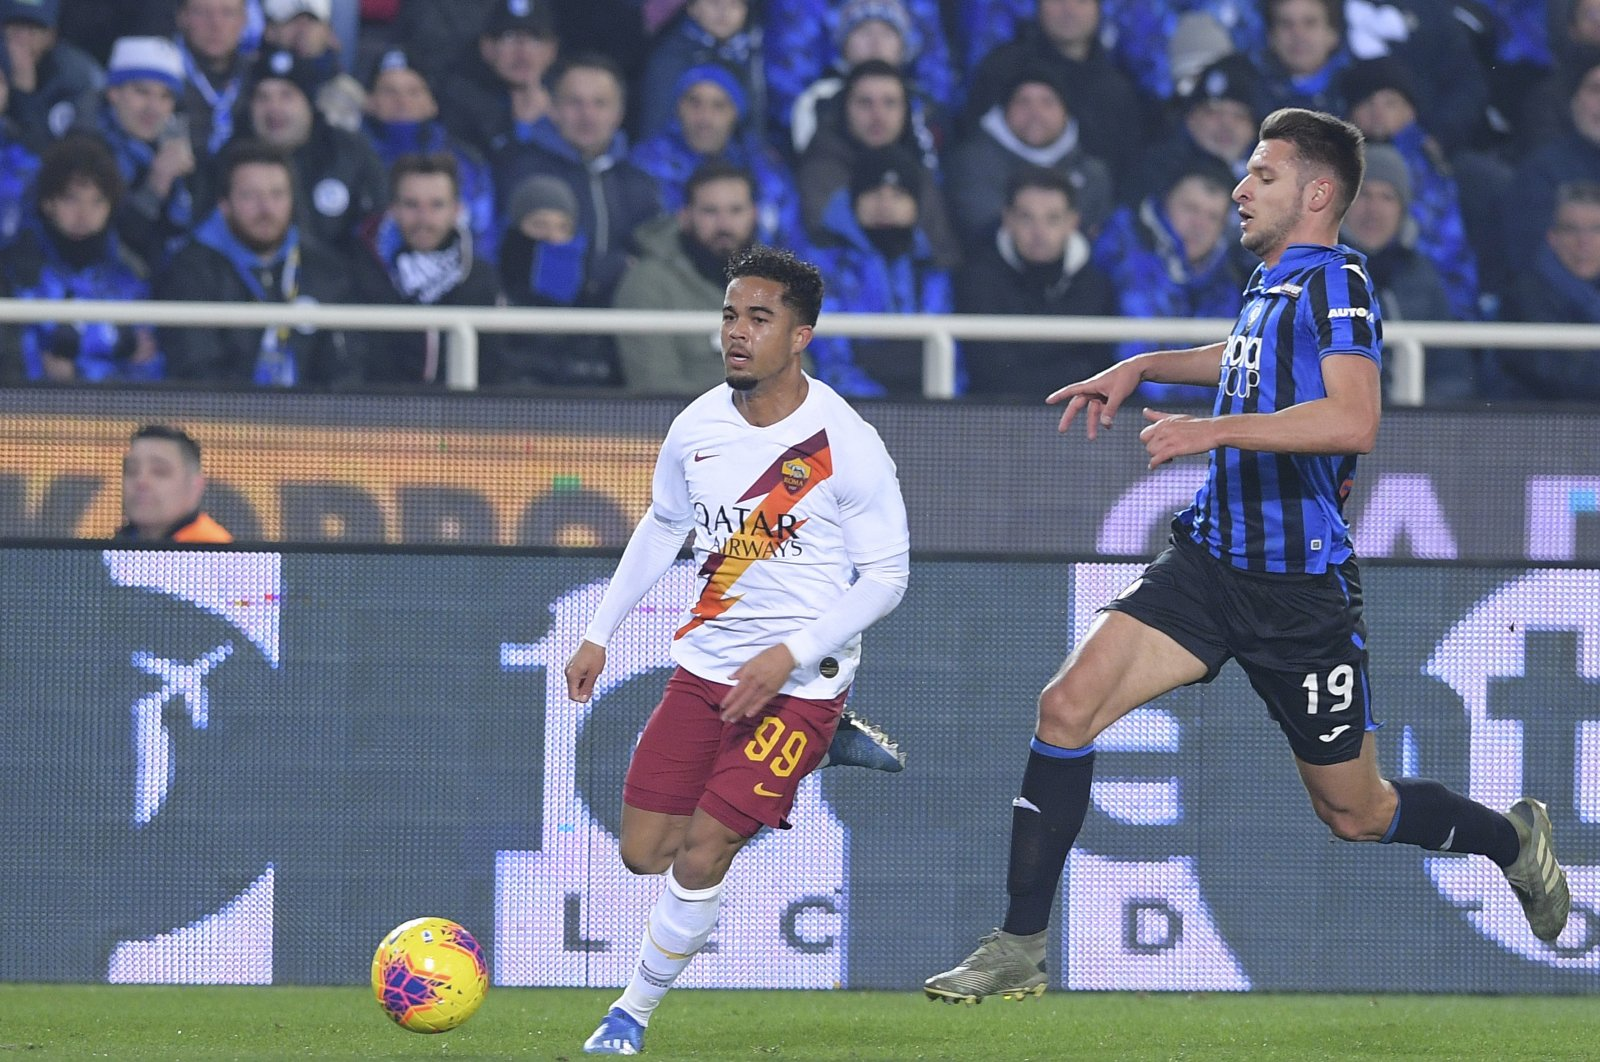 Roma's Justin Kluivert (L), during a match, in Bergamo, Italy, Feb. 15, 2020. His father Patrick is the third-highest goal-scorer for the Netherlands international team with 40 goals.(AP Photo)